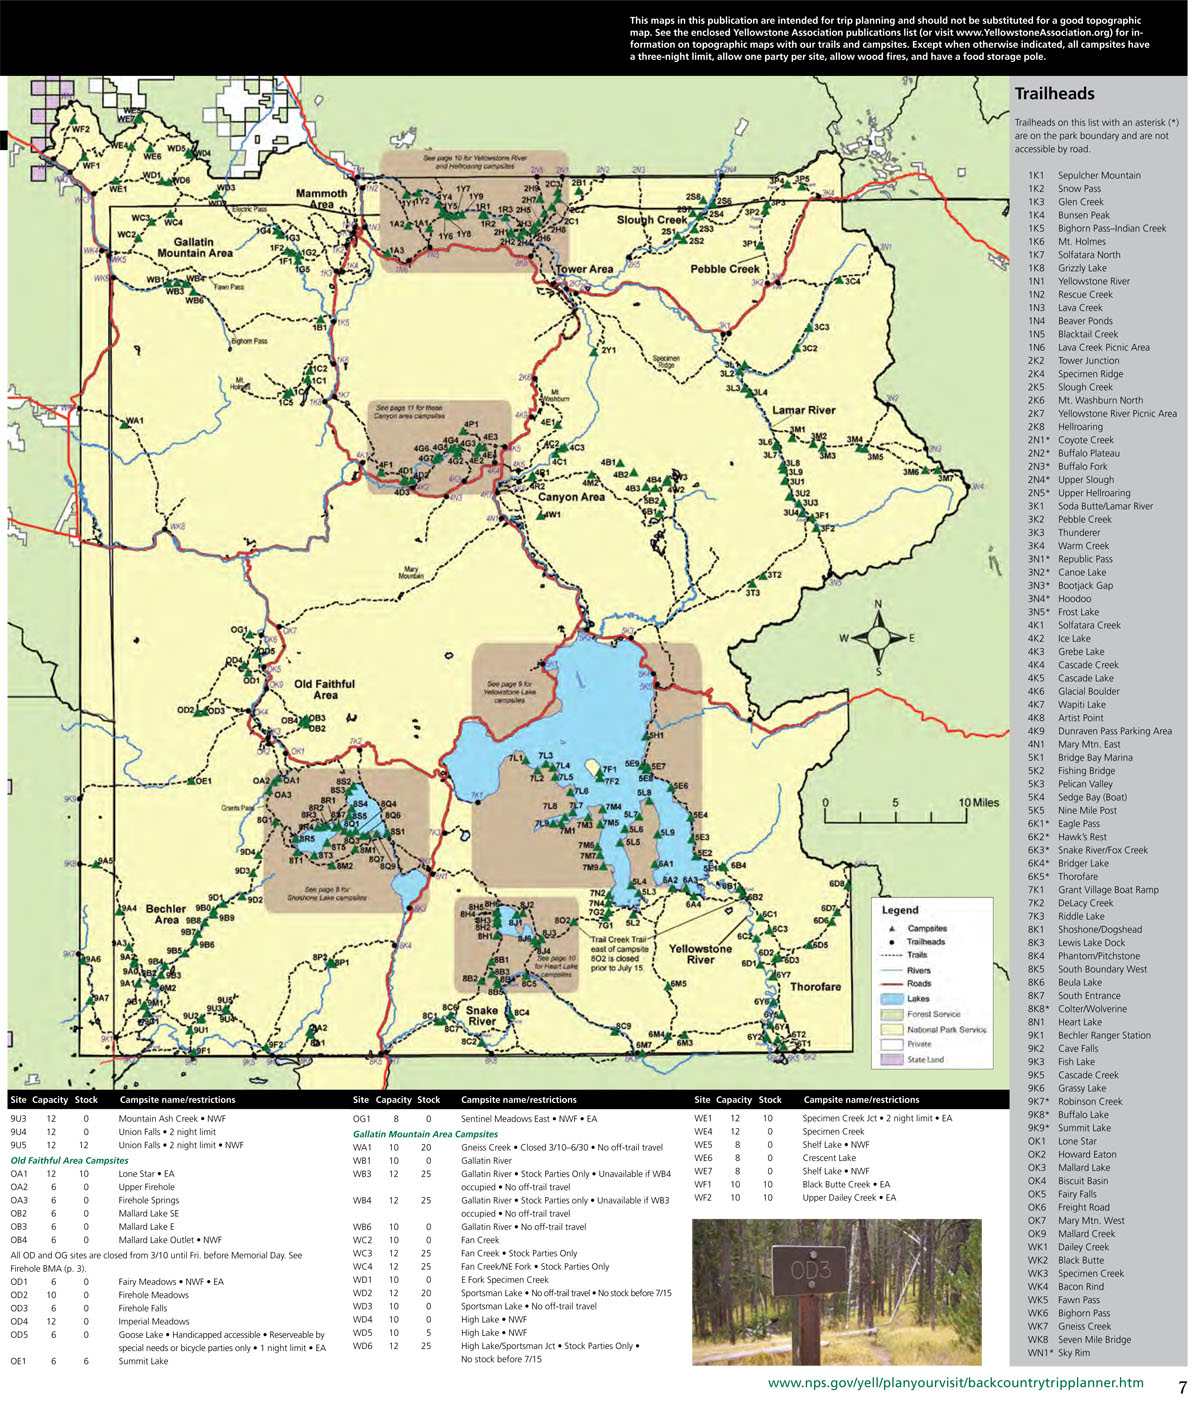 Backcountry Campsite Map of Yellowstone National Park